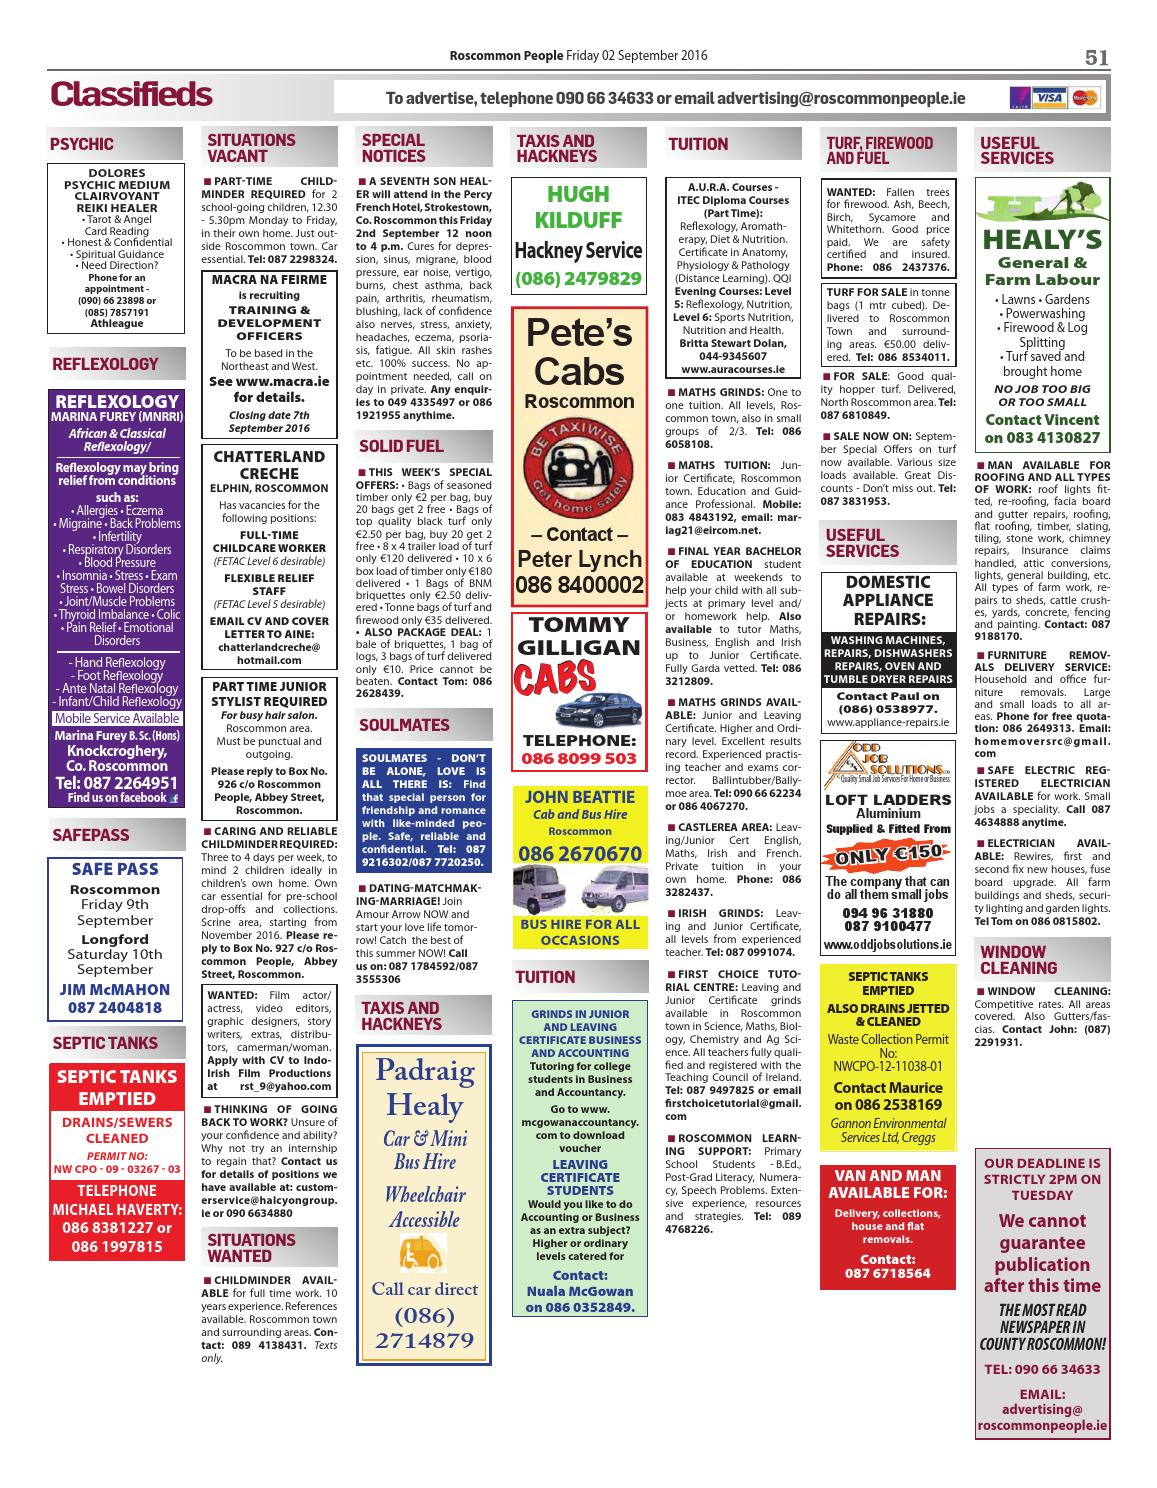 Roscommon Classified Ads | Gumtree Classifieds Ireland